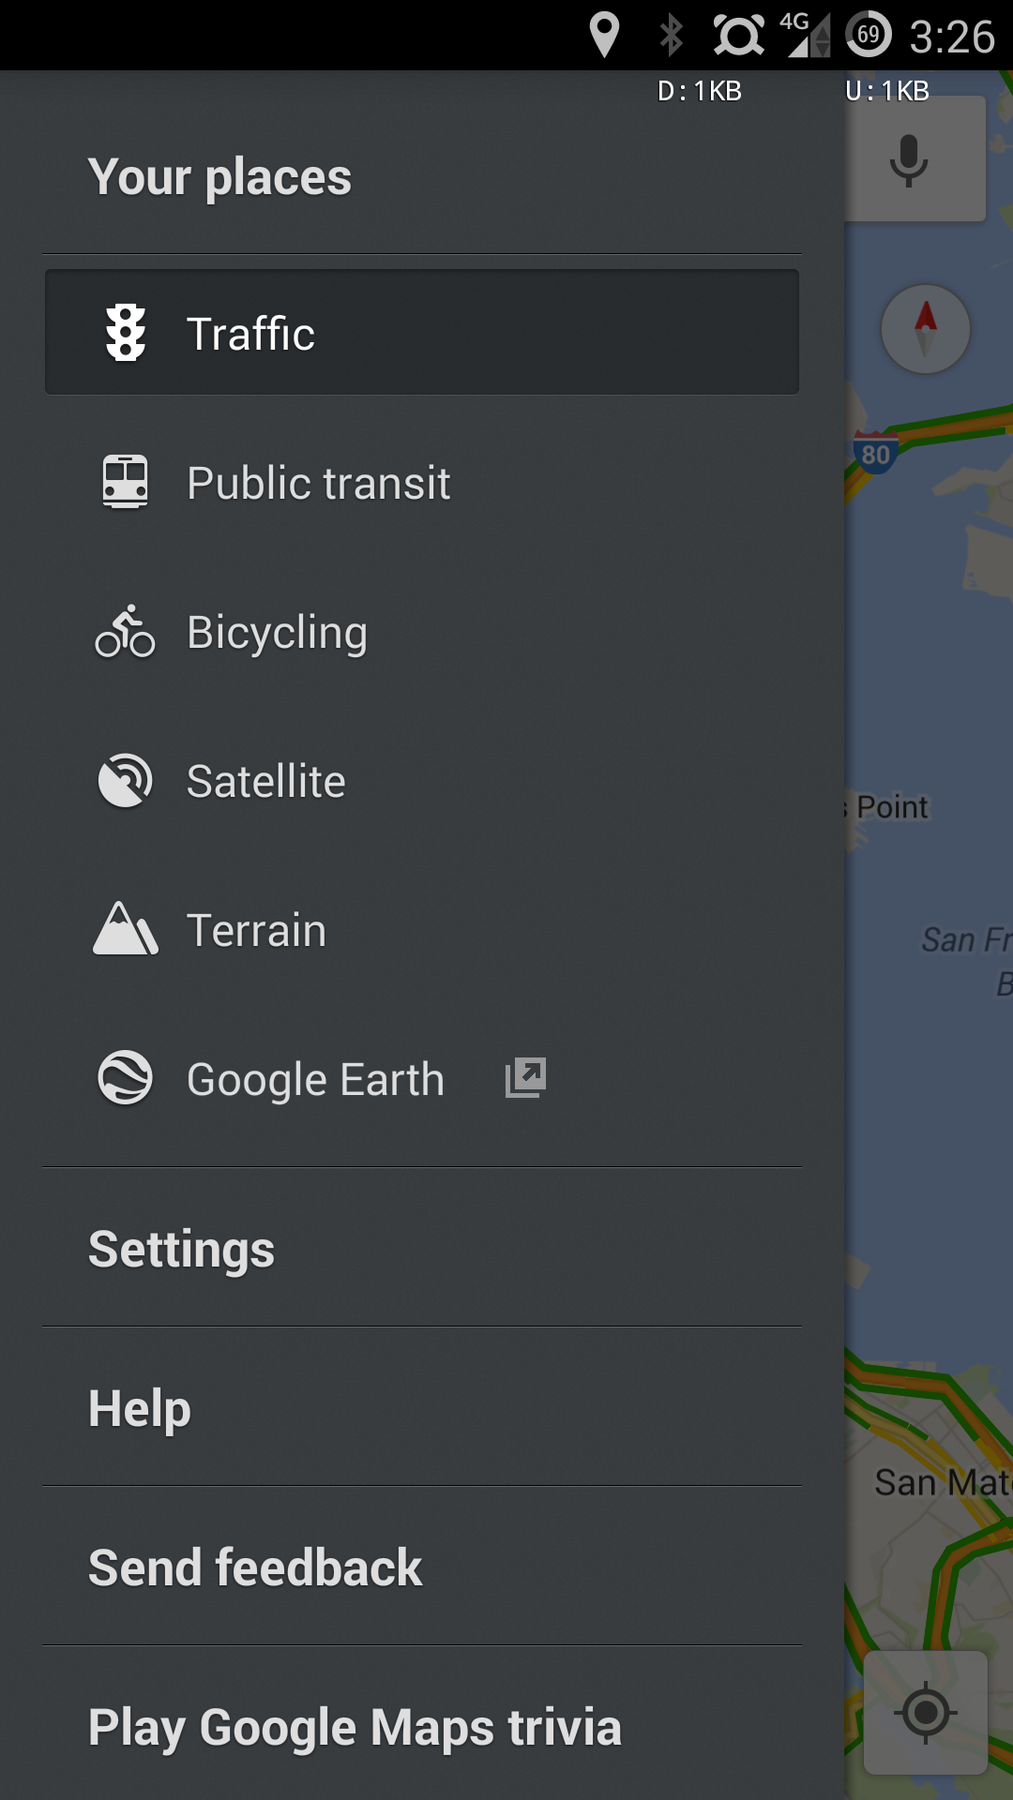 APK Download] Google Maps Updated To v8.2 With Biking ... on google earth update 2014, google maps updated 2012, google maps street view, google search, google sky,